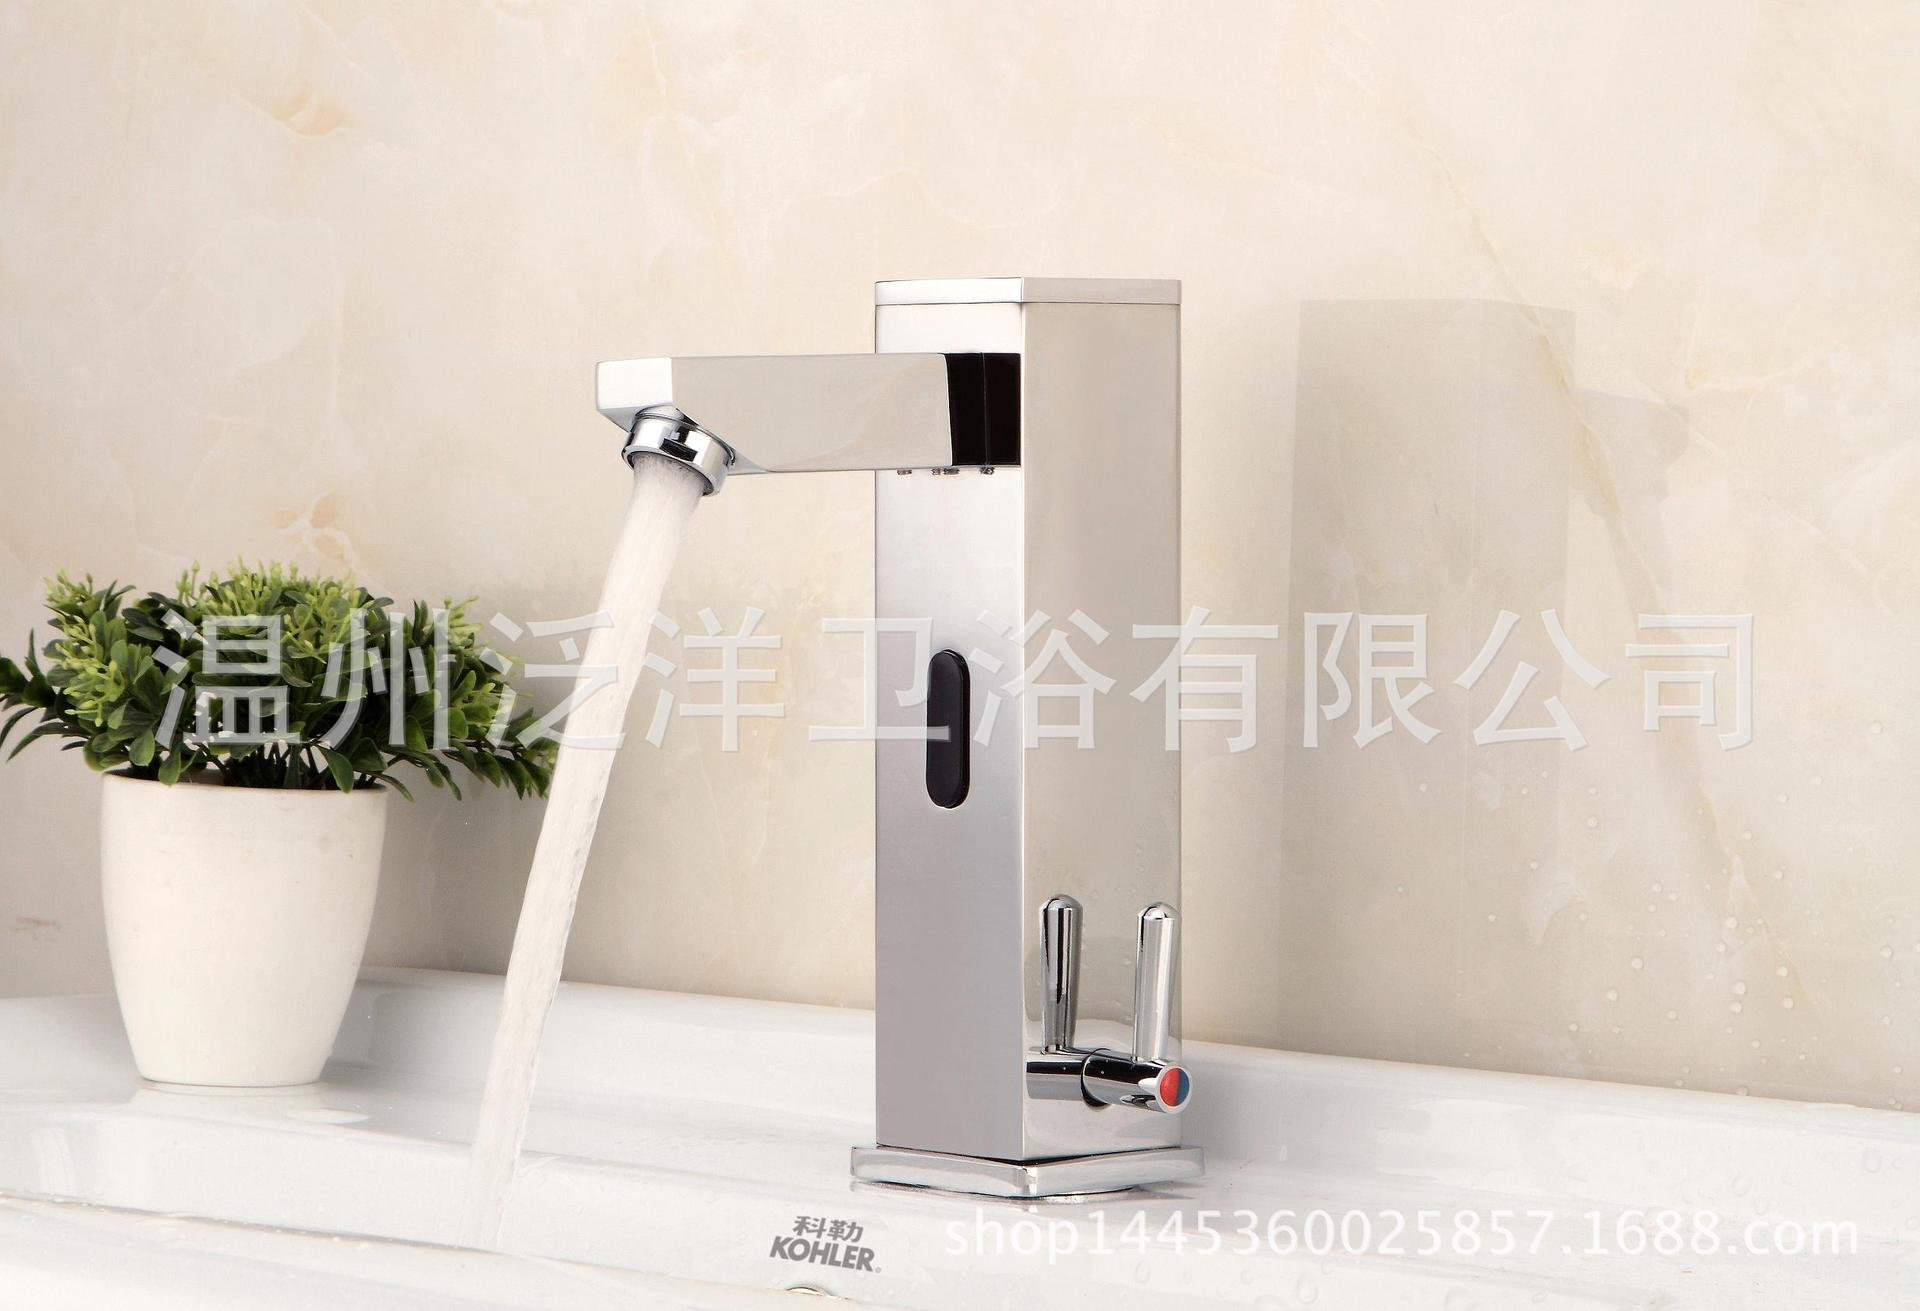 Furesnts Modern home kitchen and Bathroom Sink Taps The fourparty sensing classic copper tap water Mixer adjustable temperature sensing Mixer Bathroom Sink Taps,(Standard G 1/2 universal hose ports)